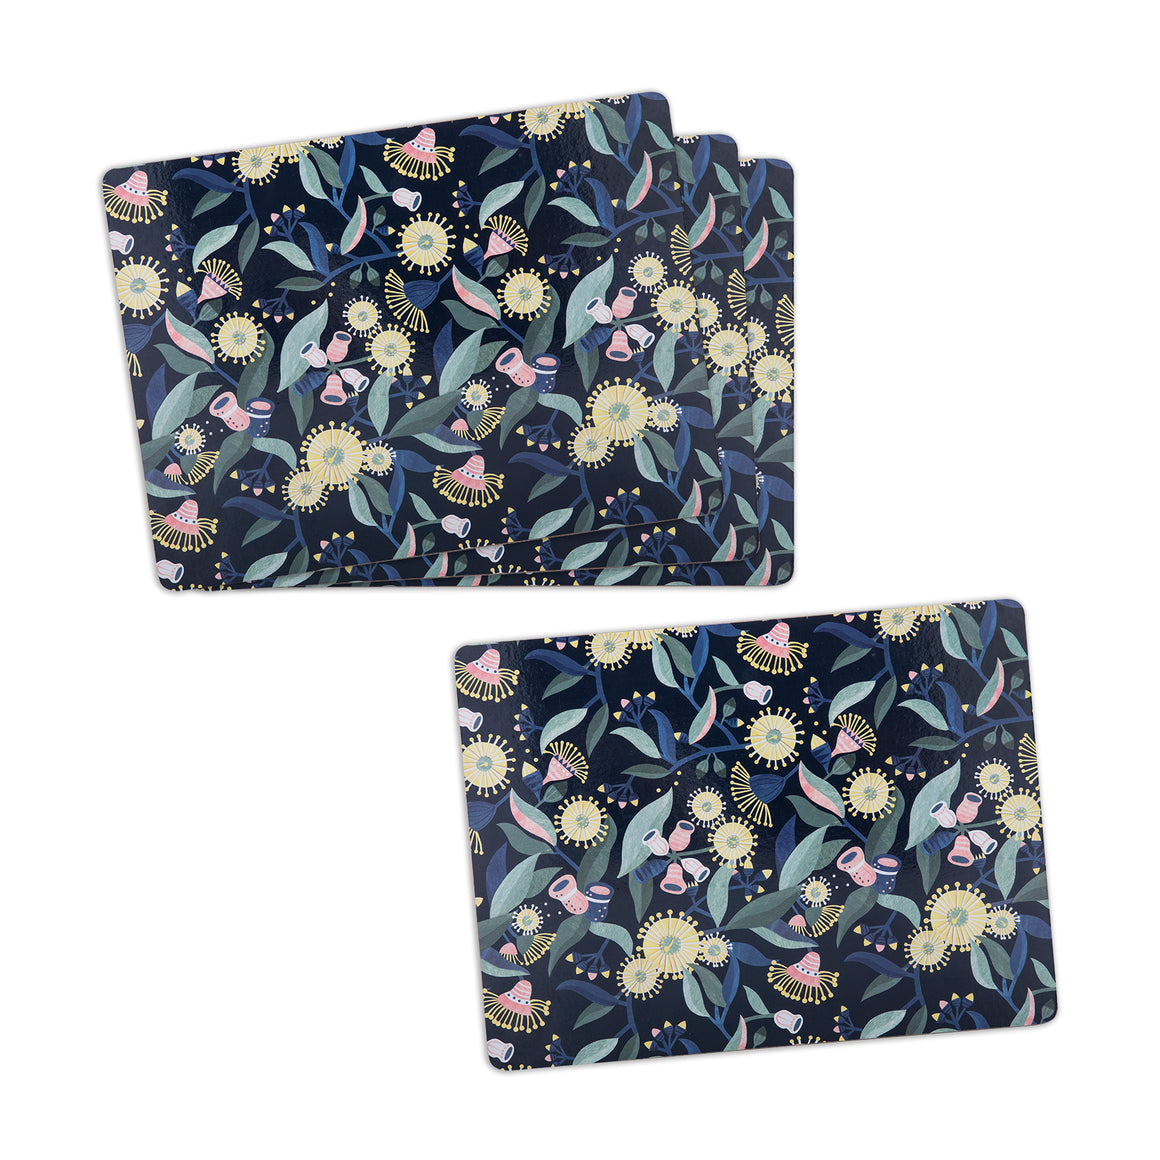 Gum Blossom Cork Back Placemat Set of 4